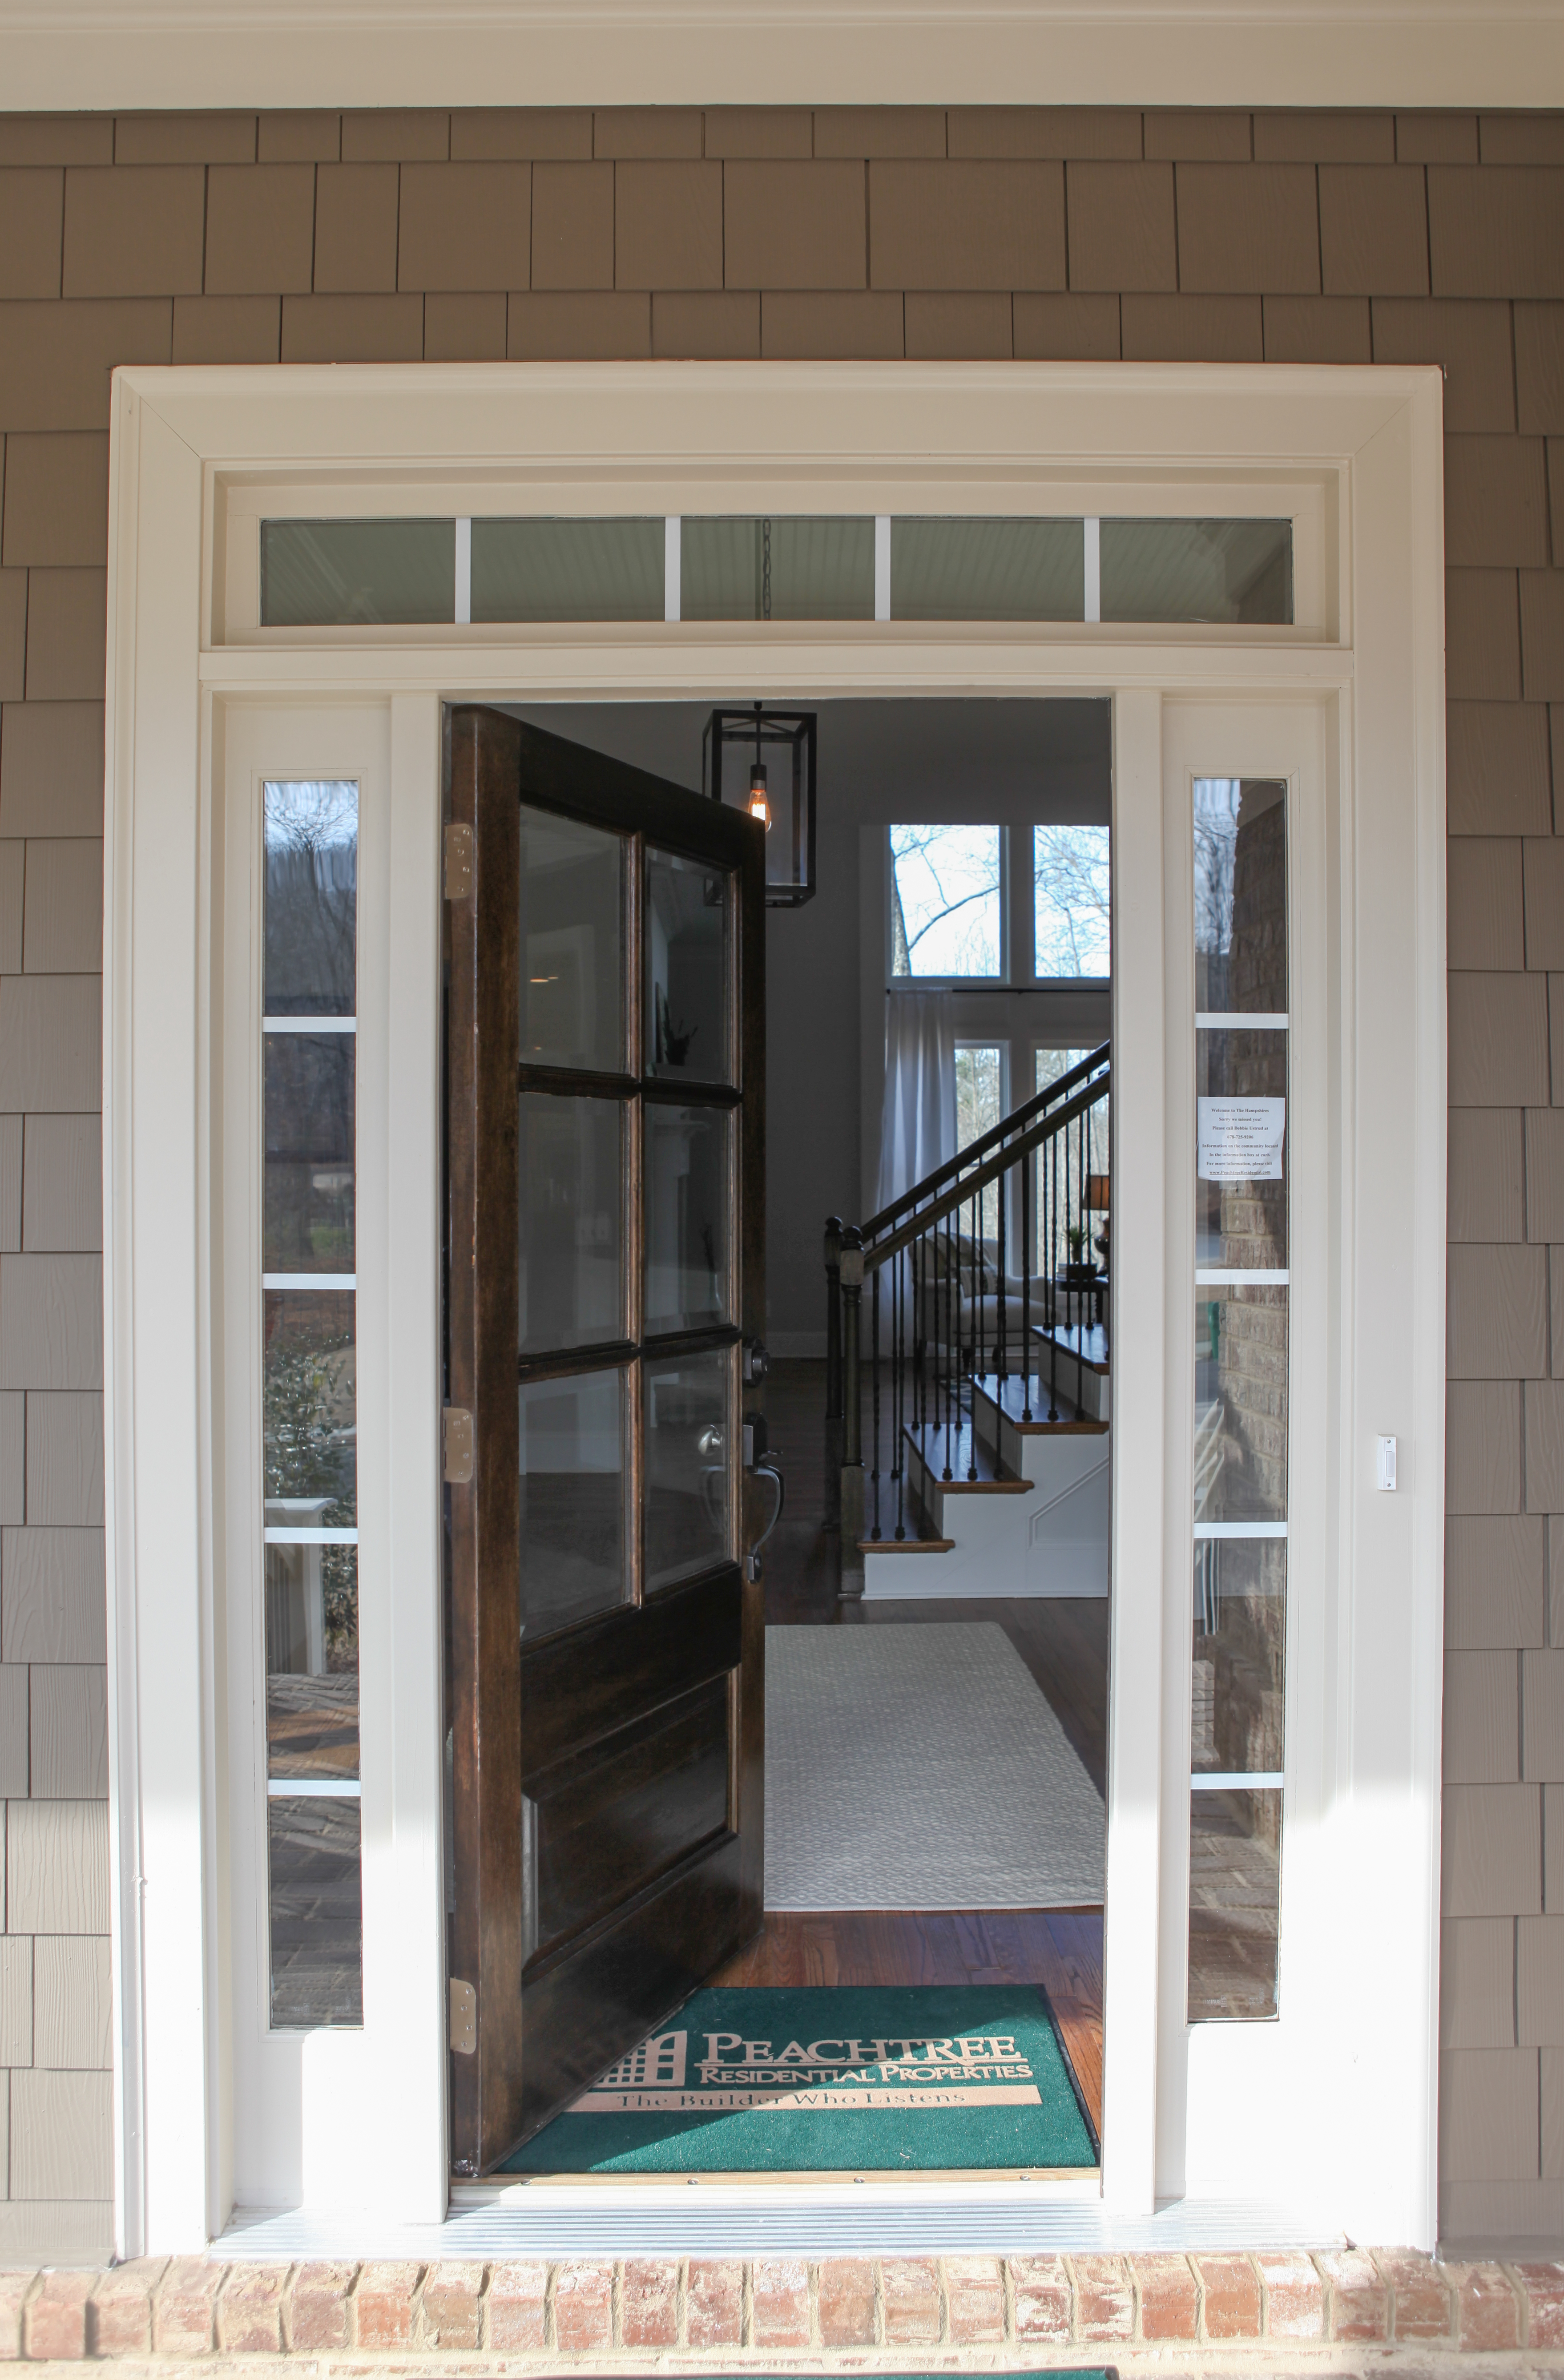 5350 #4B777A  Peachtree User Guide With Peachtree Windows. Peachtree Exterior Doors image Peachtree Entry Doors 46833516